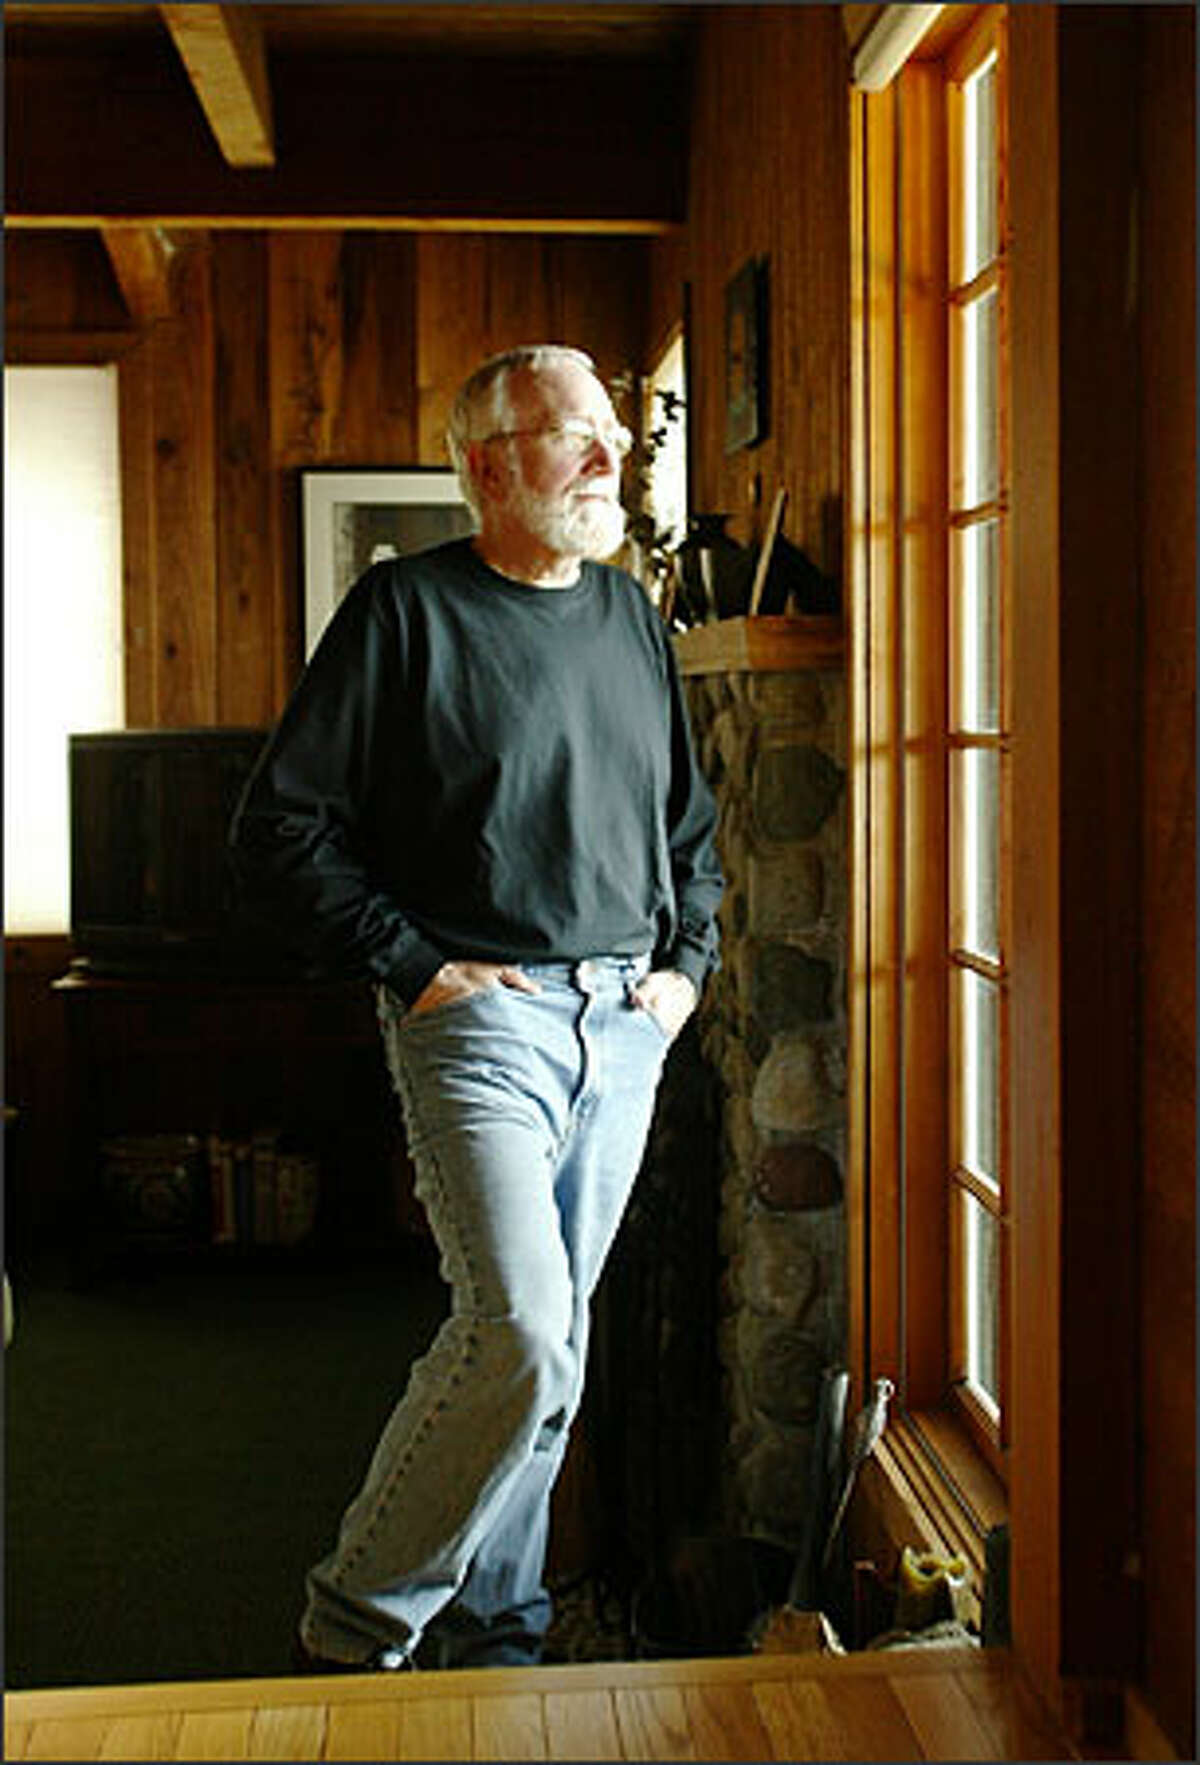 At home on Orcas Island, Norm Stamper is finishing the book he